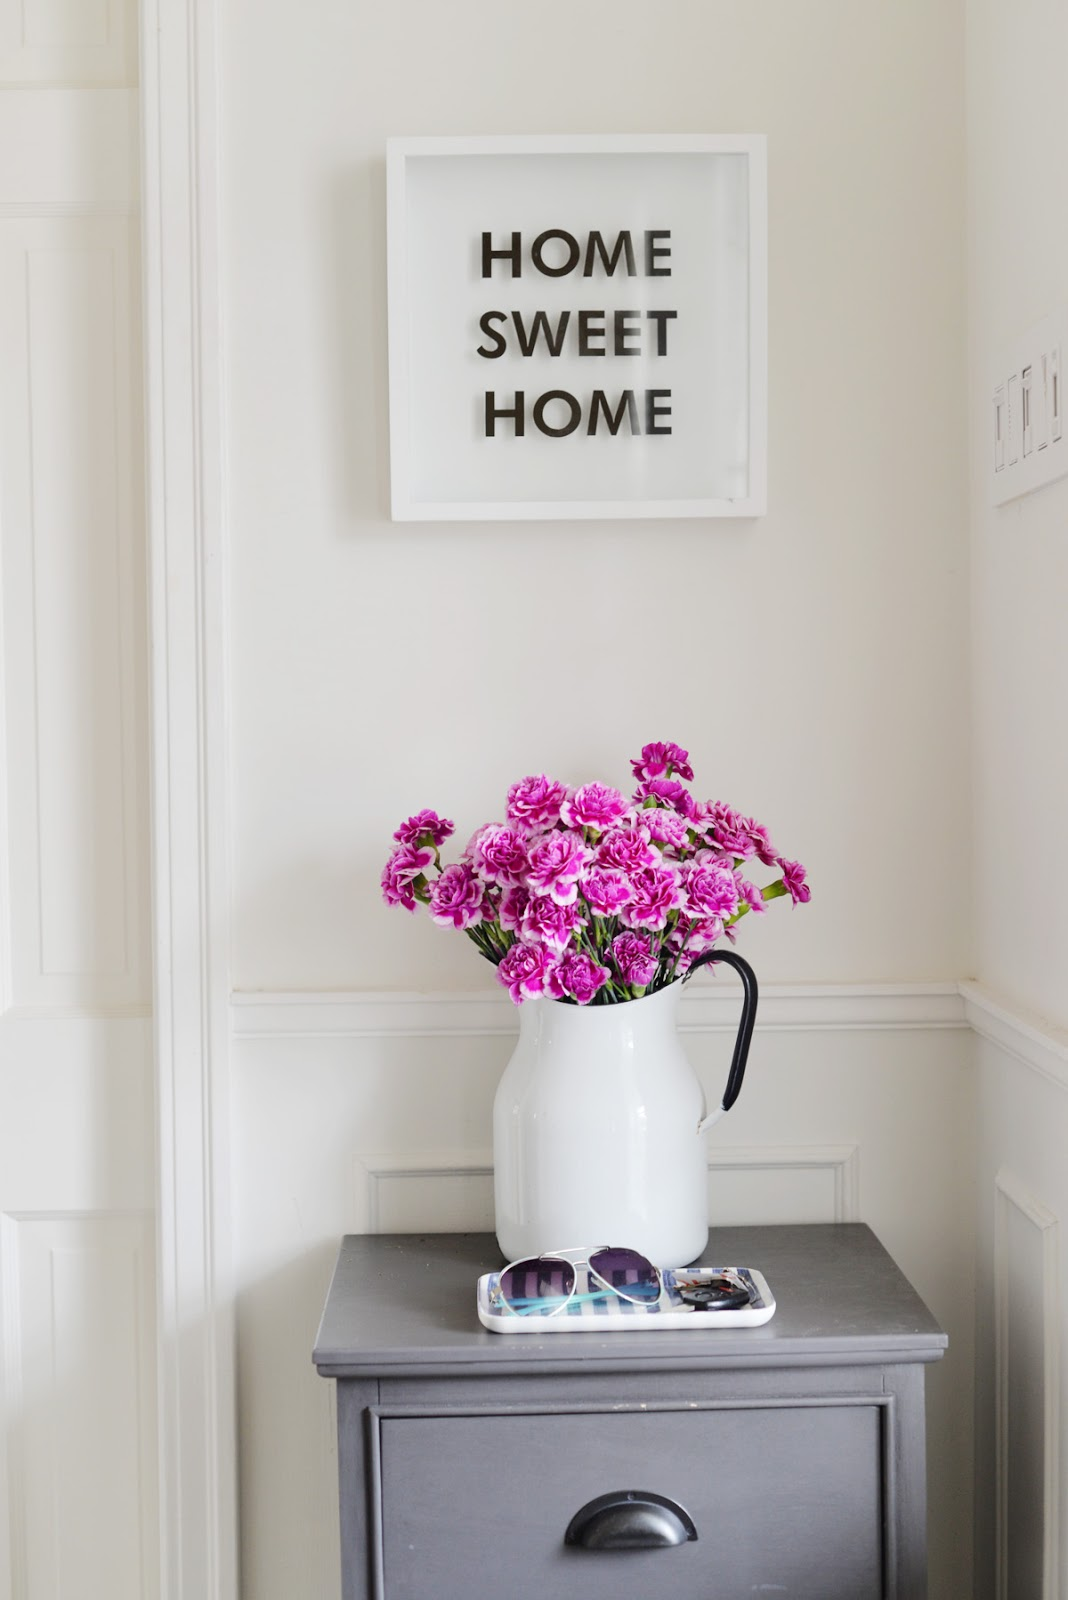 home sweet home sign, pink flowers in pitcher vase, welcoming home entry